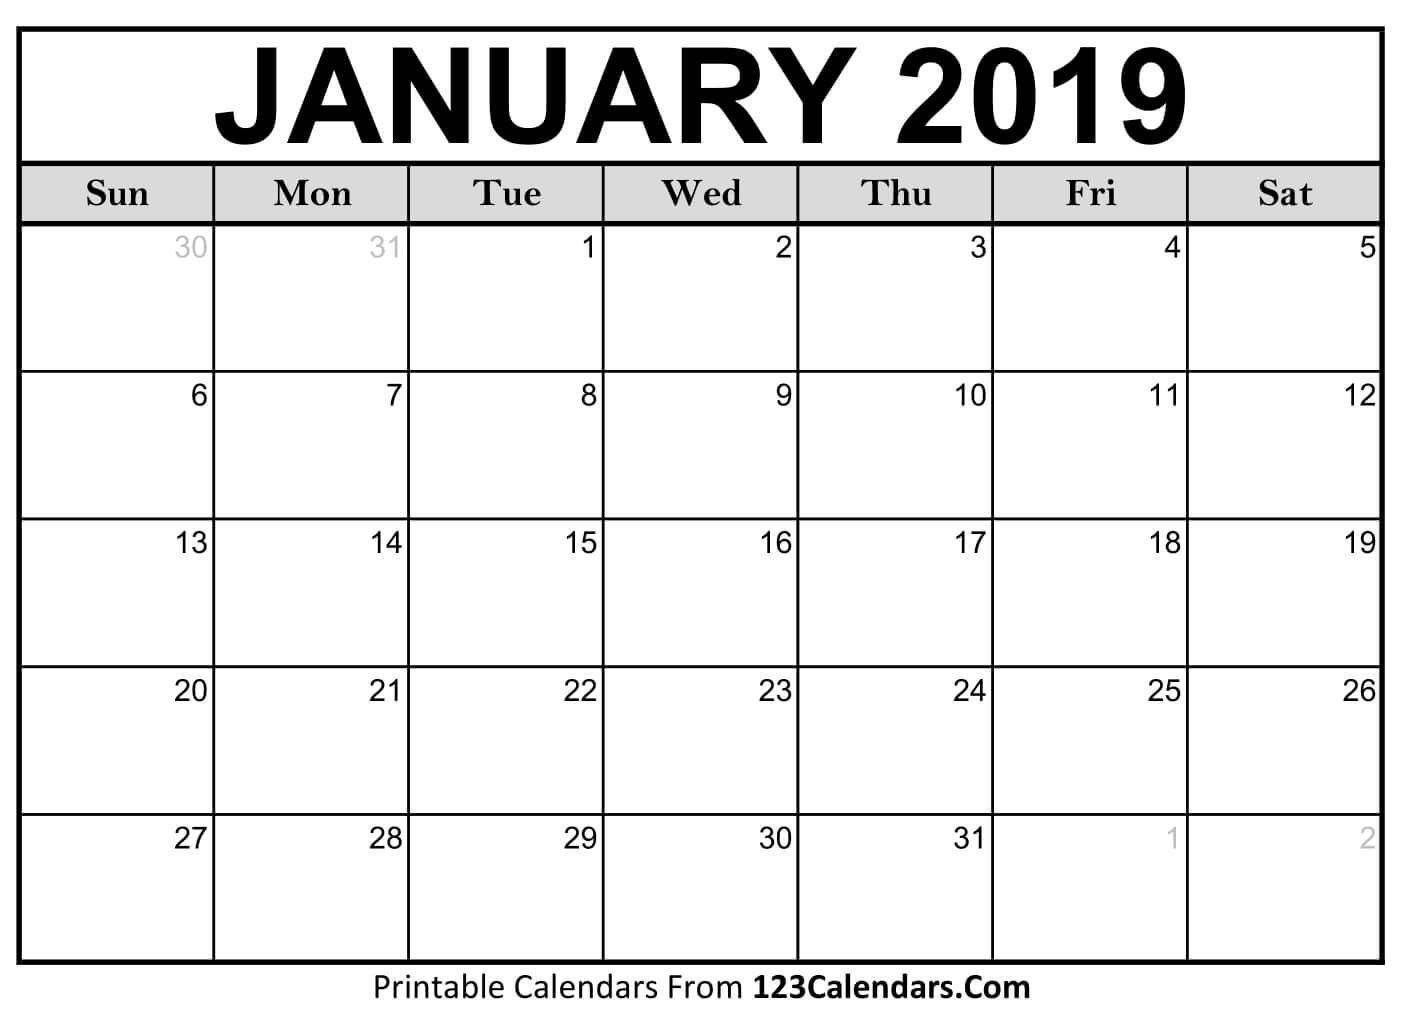 Printable January 2019 Calendar Templates - 123Calendars Calendar 2019 January